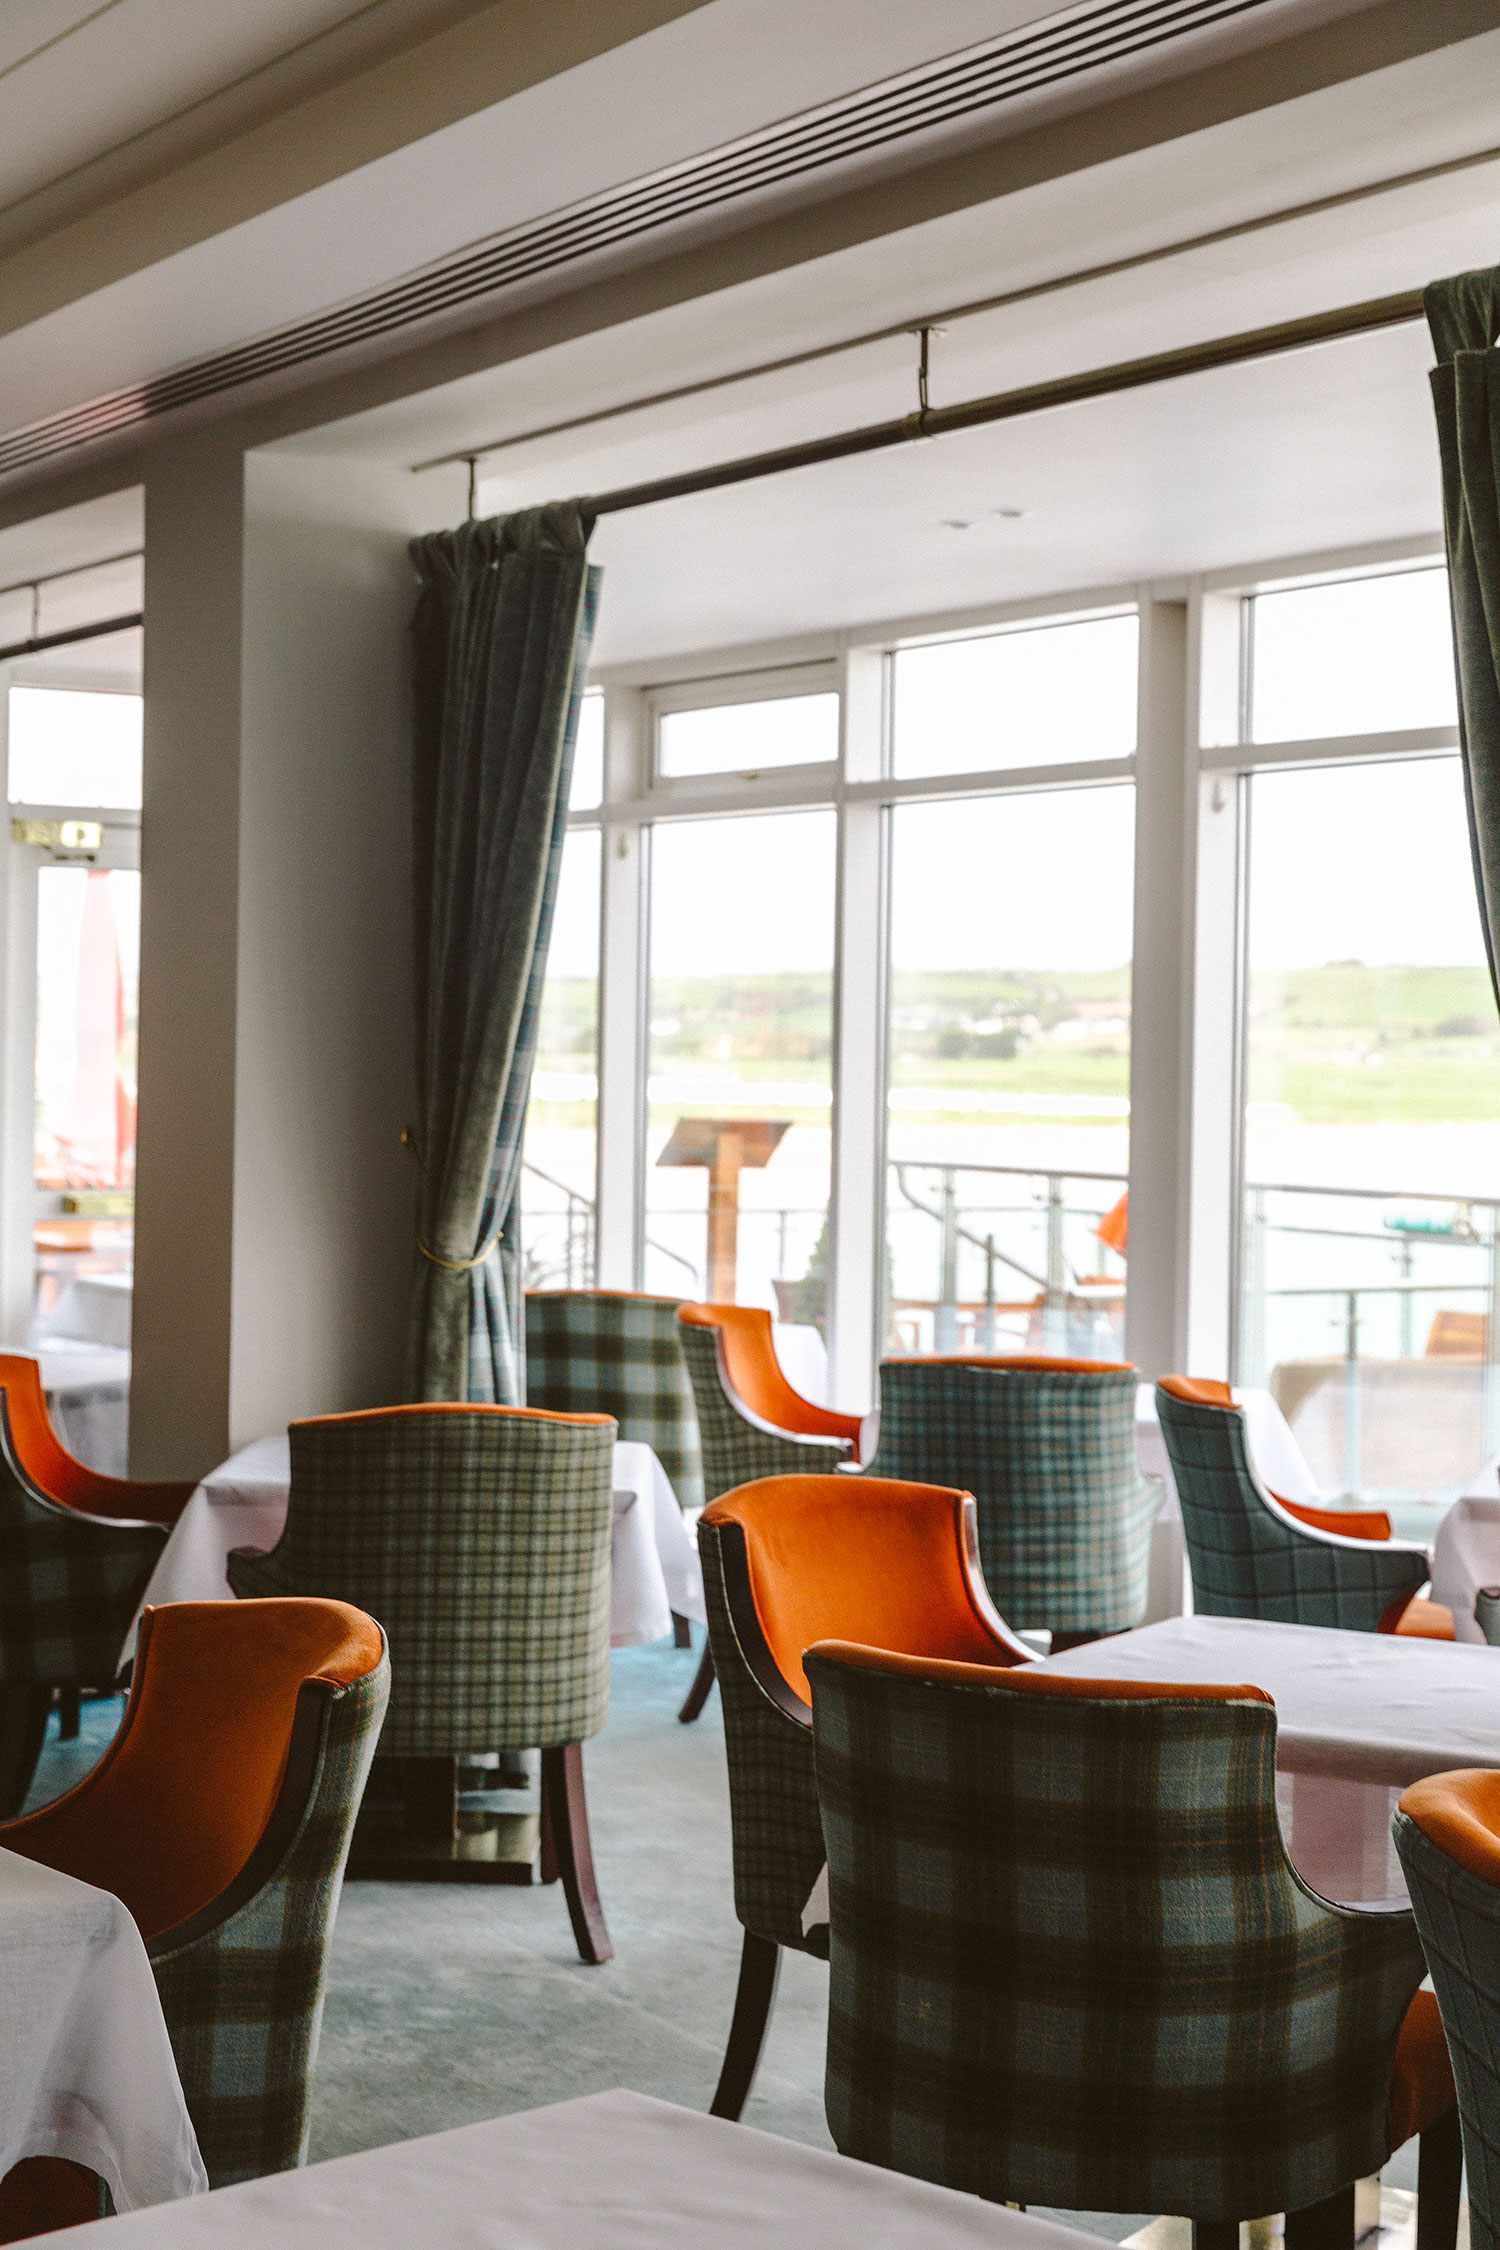 Cliff house Hotel luxury hotel in ardmore county waterford, Ireland